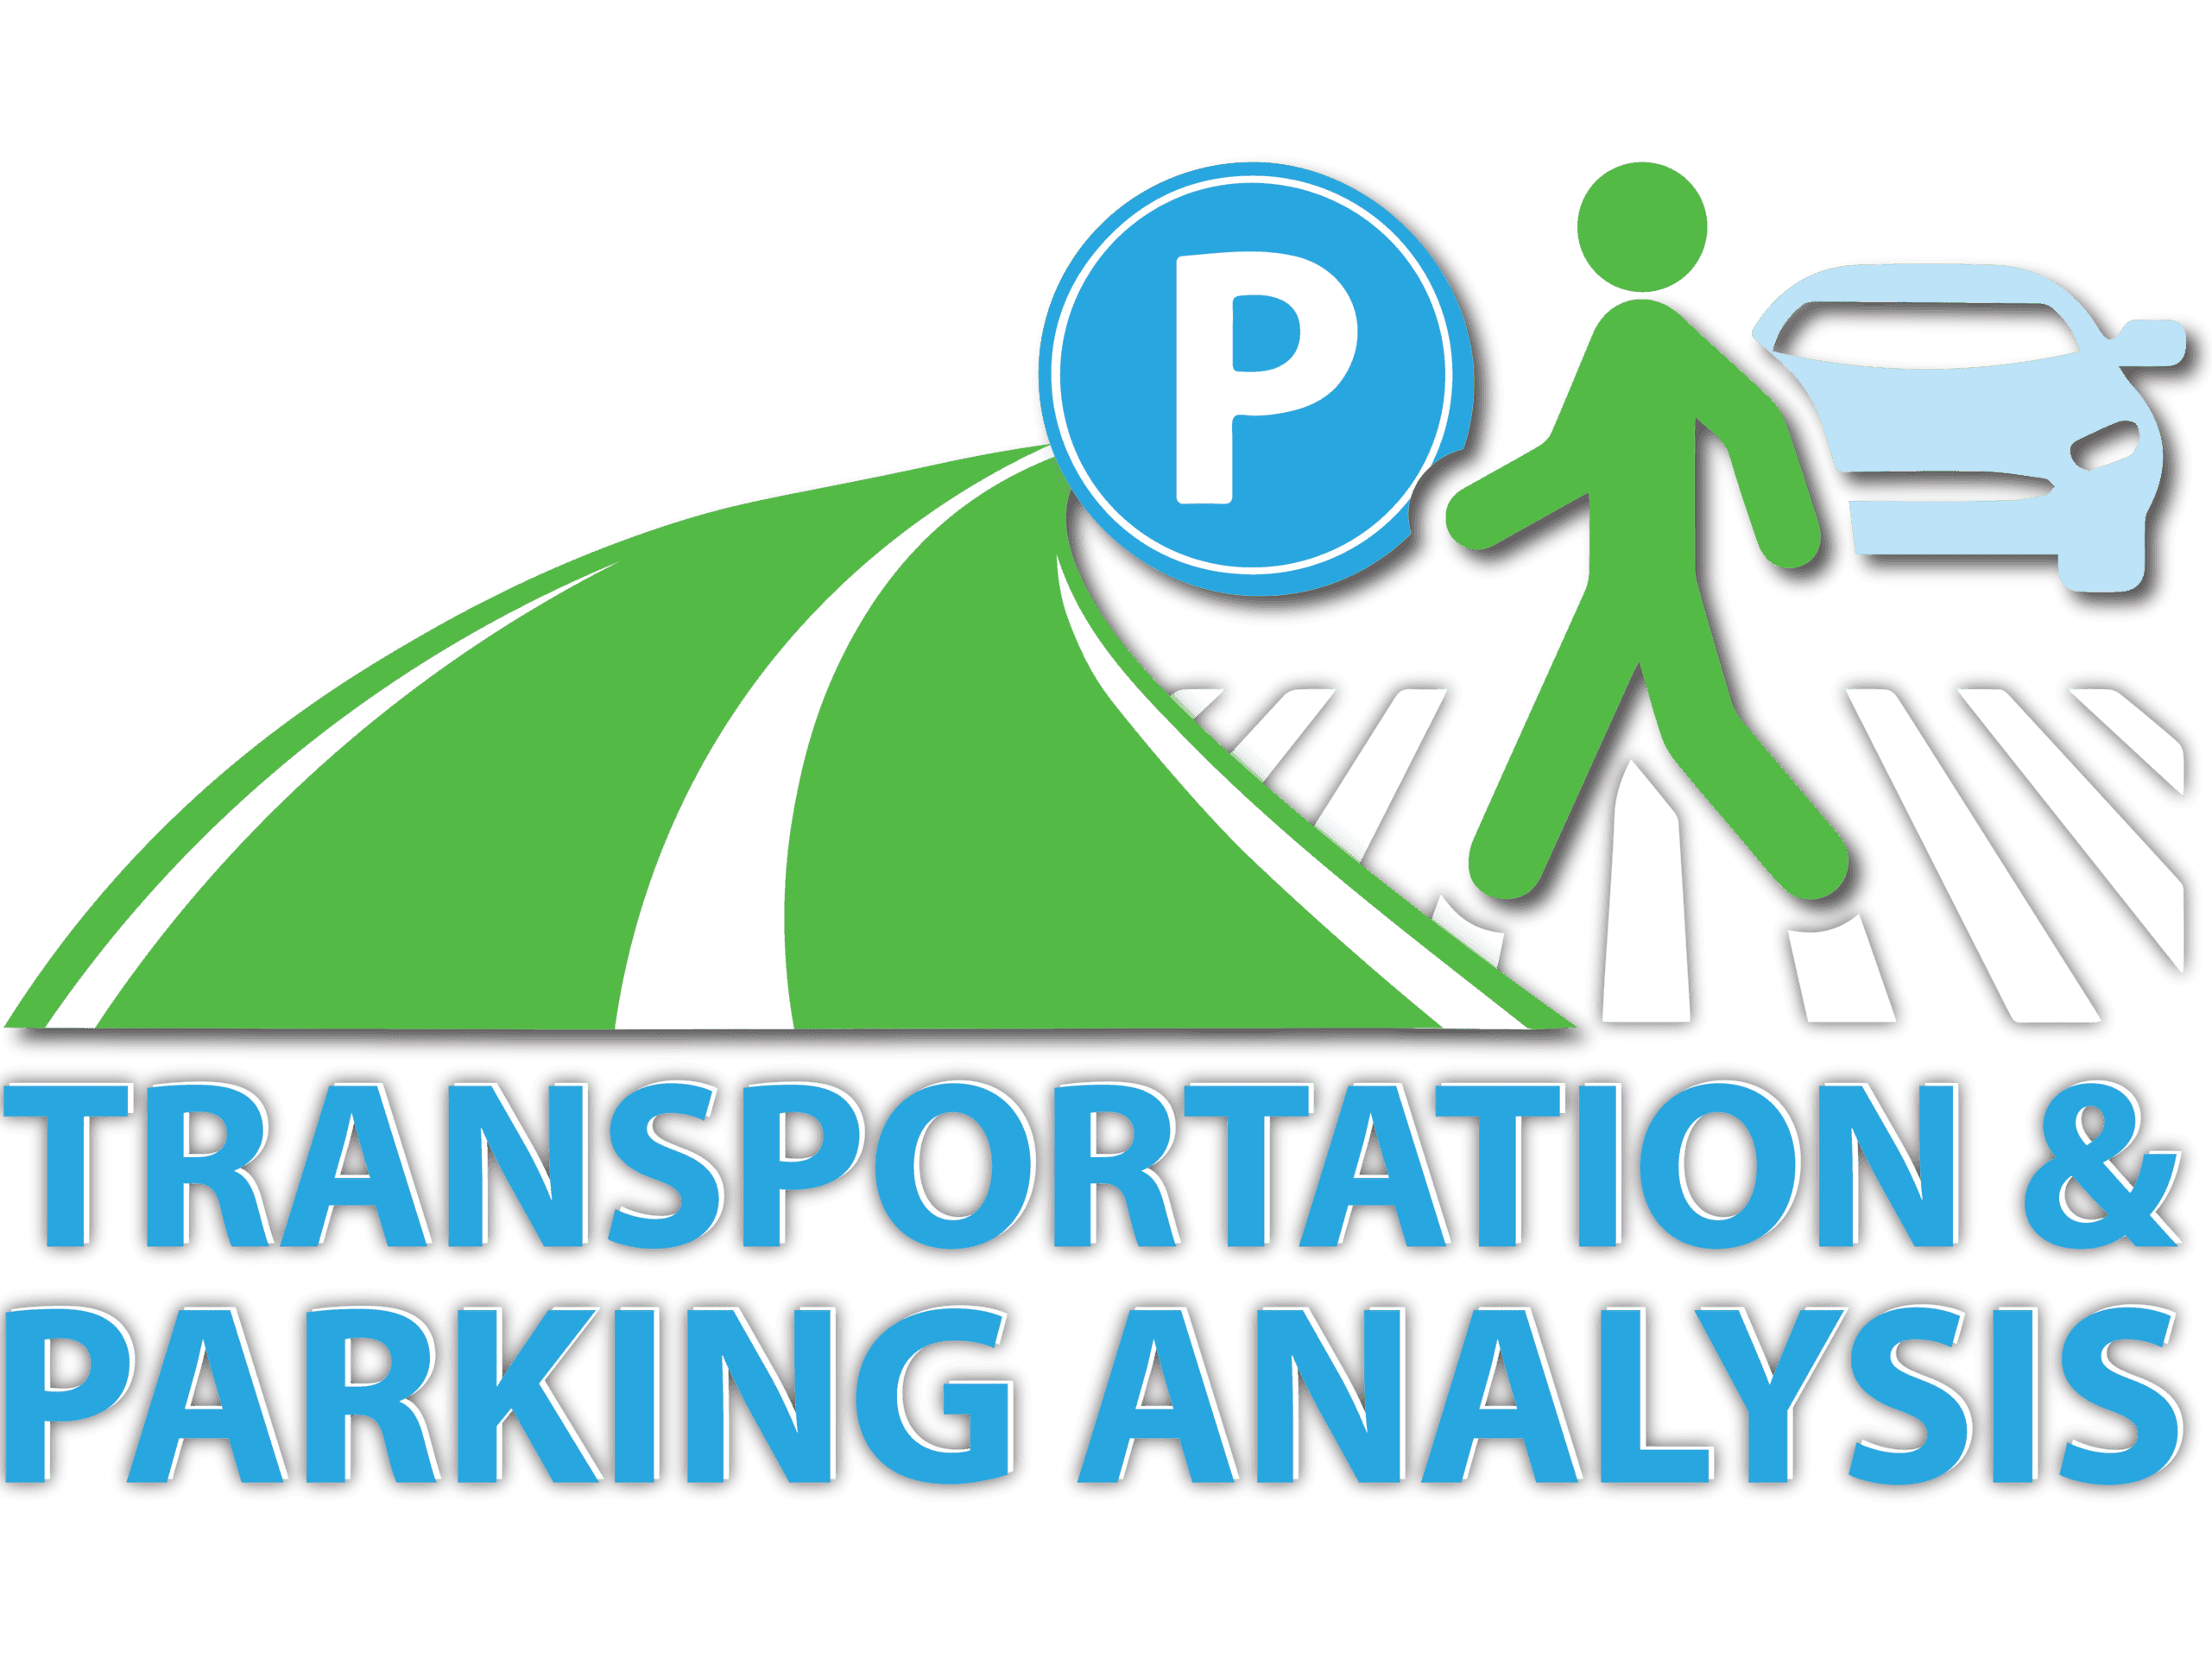 TRANSPORTATION PARKING ANALYSIS LOGO